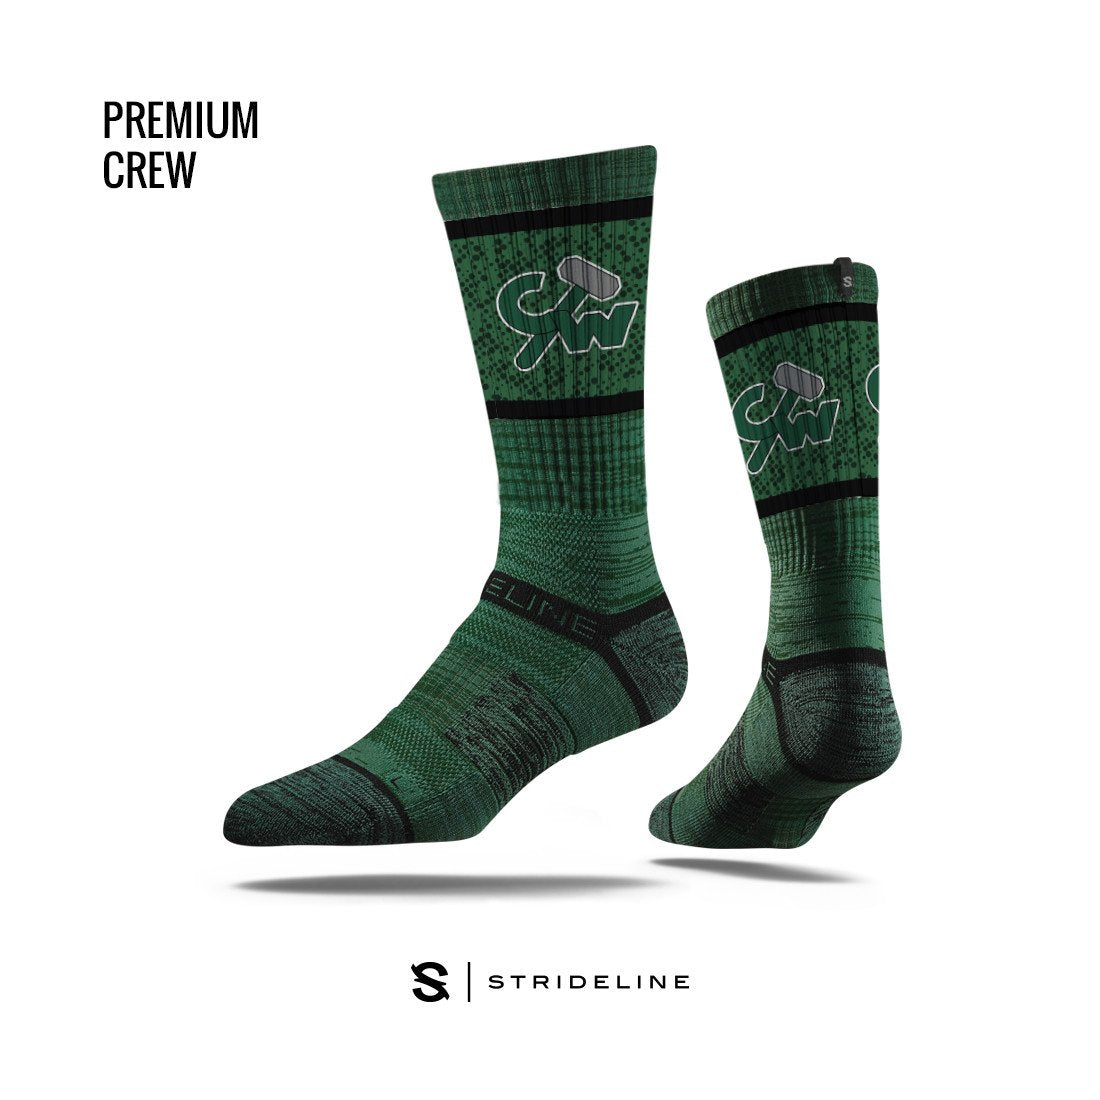 Charles Wright Academy Apparel | Socks | Premium